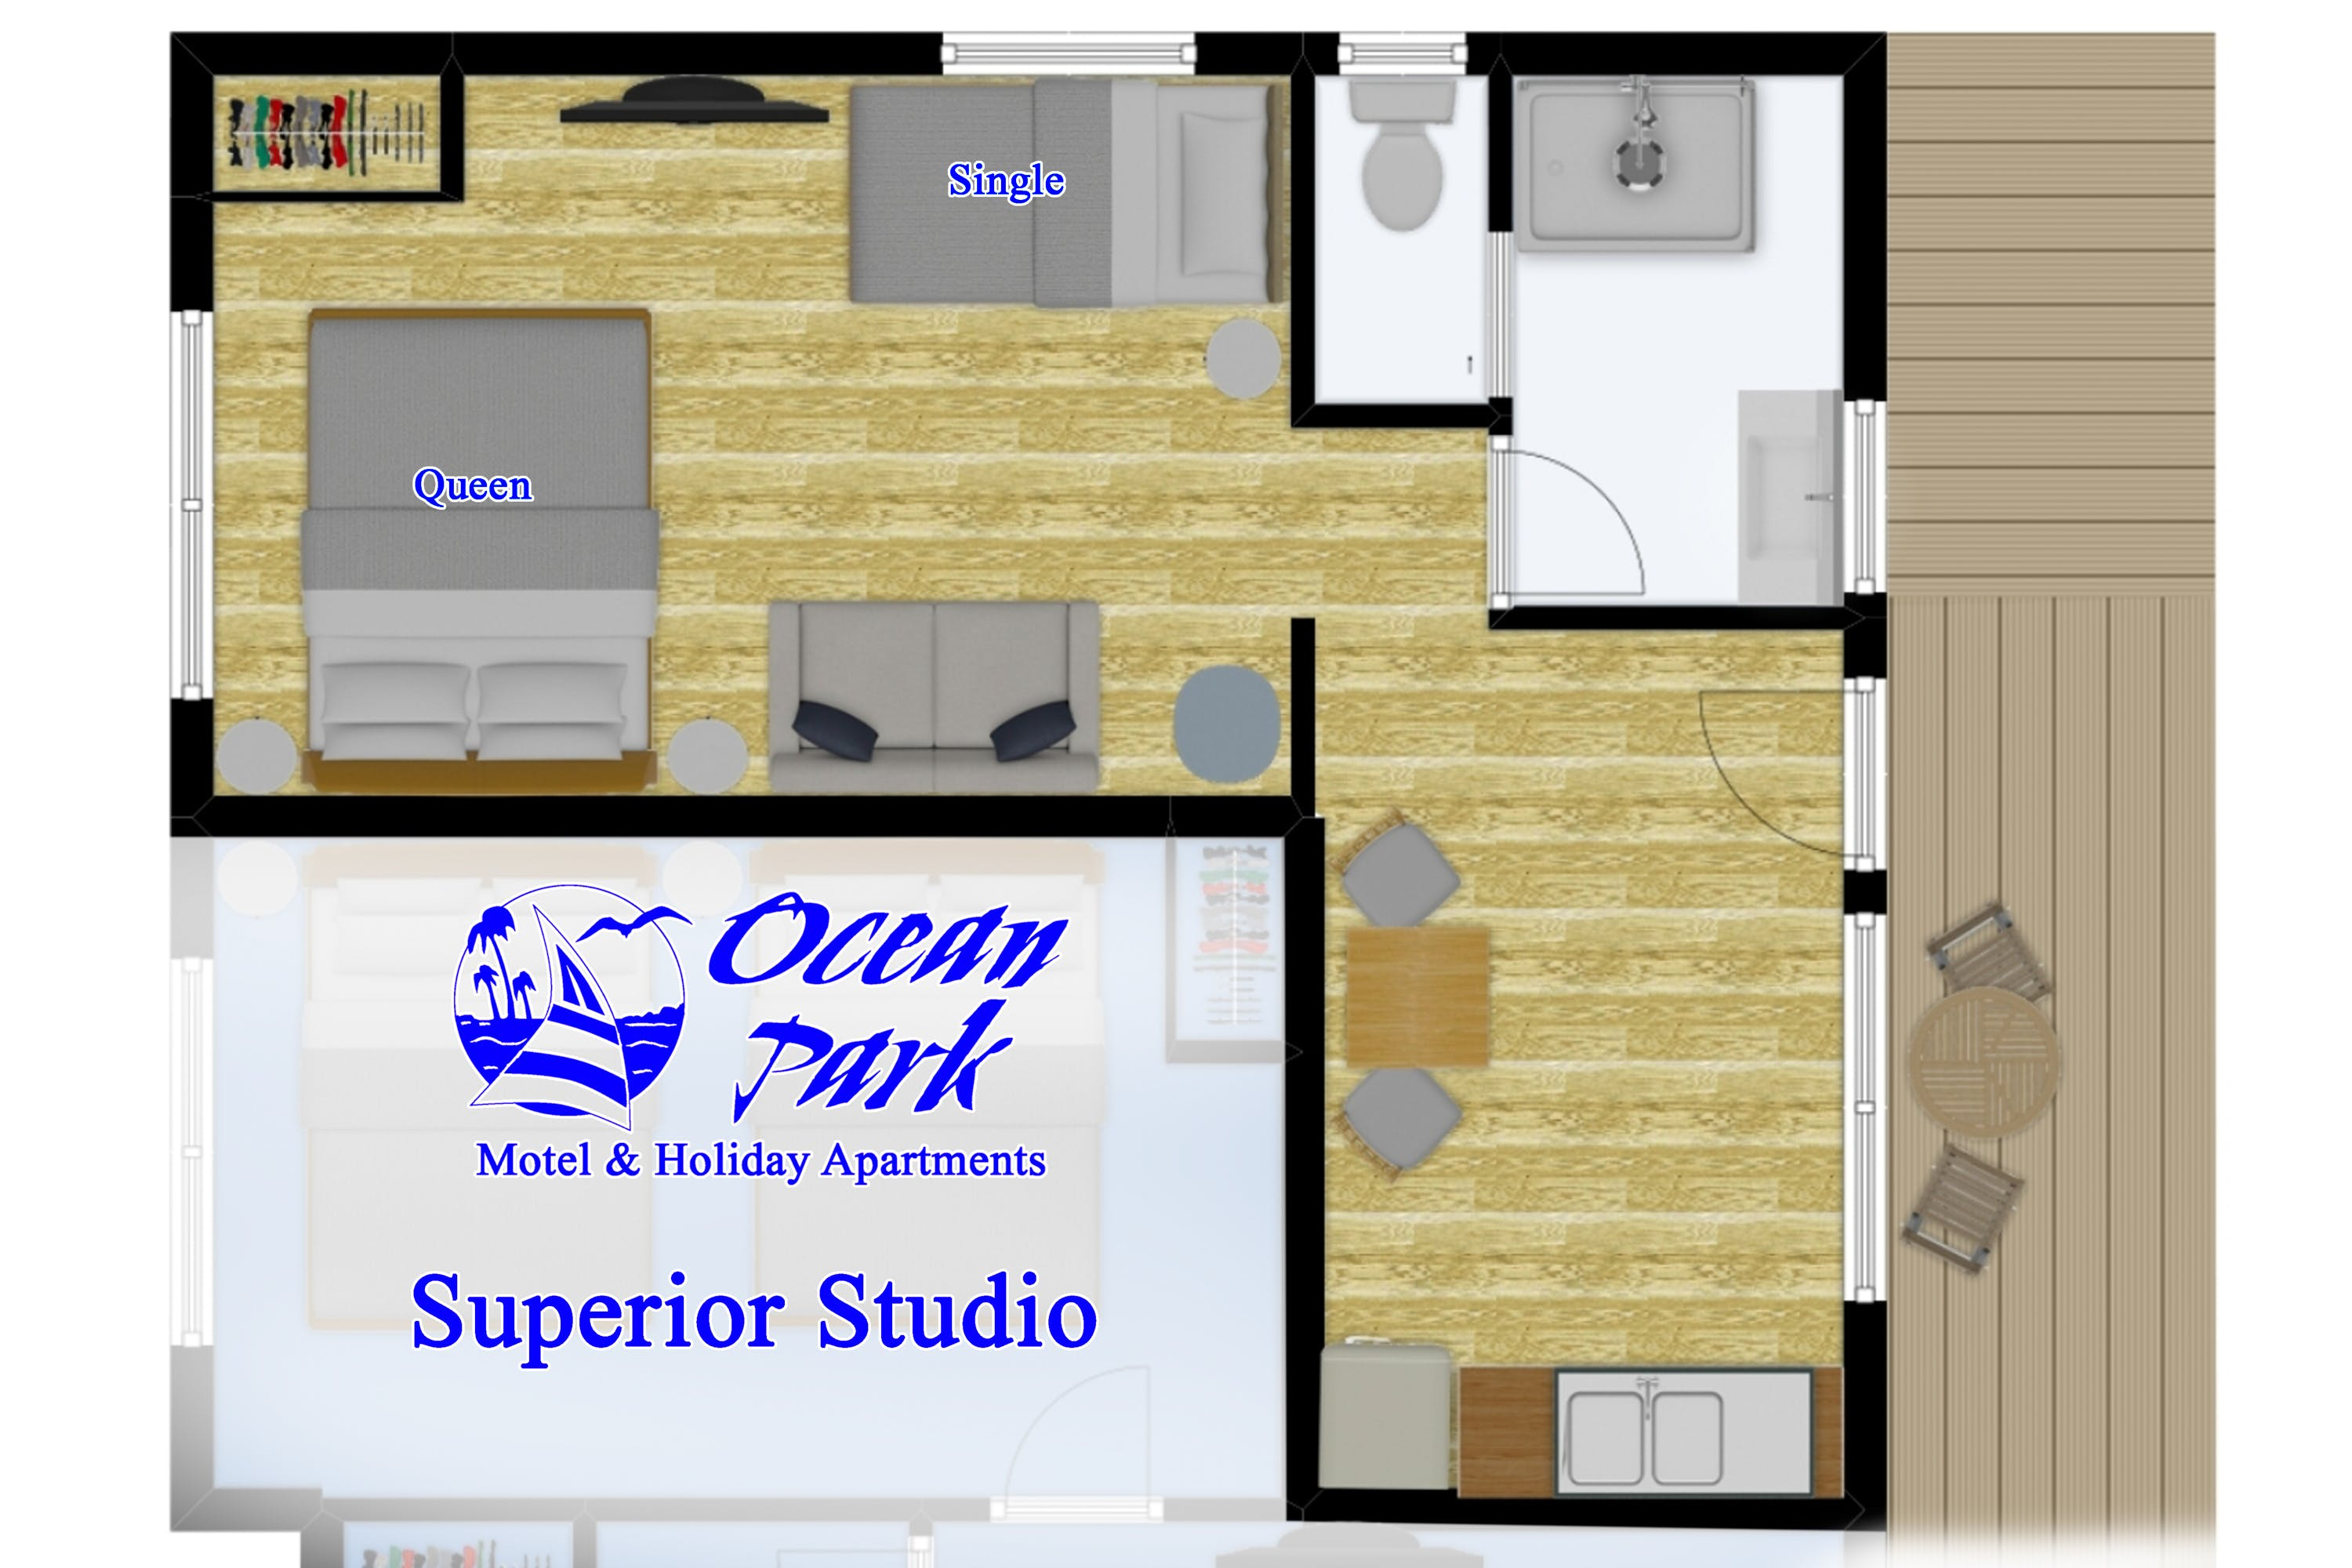 Superior Studio Floor Plan